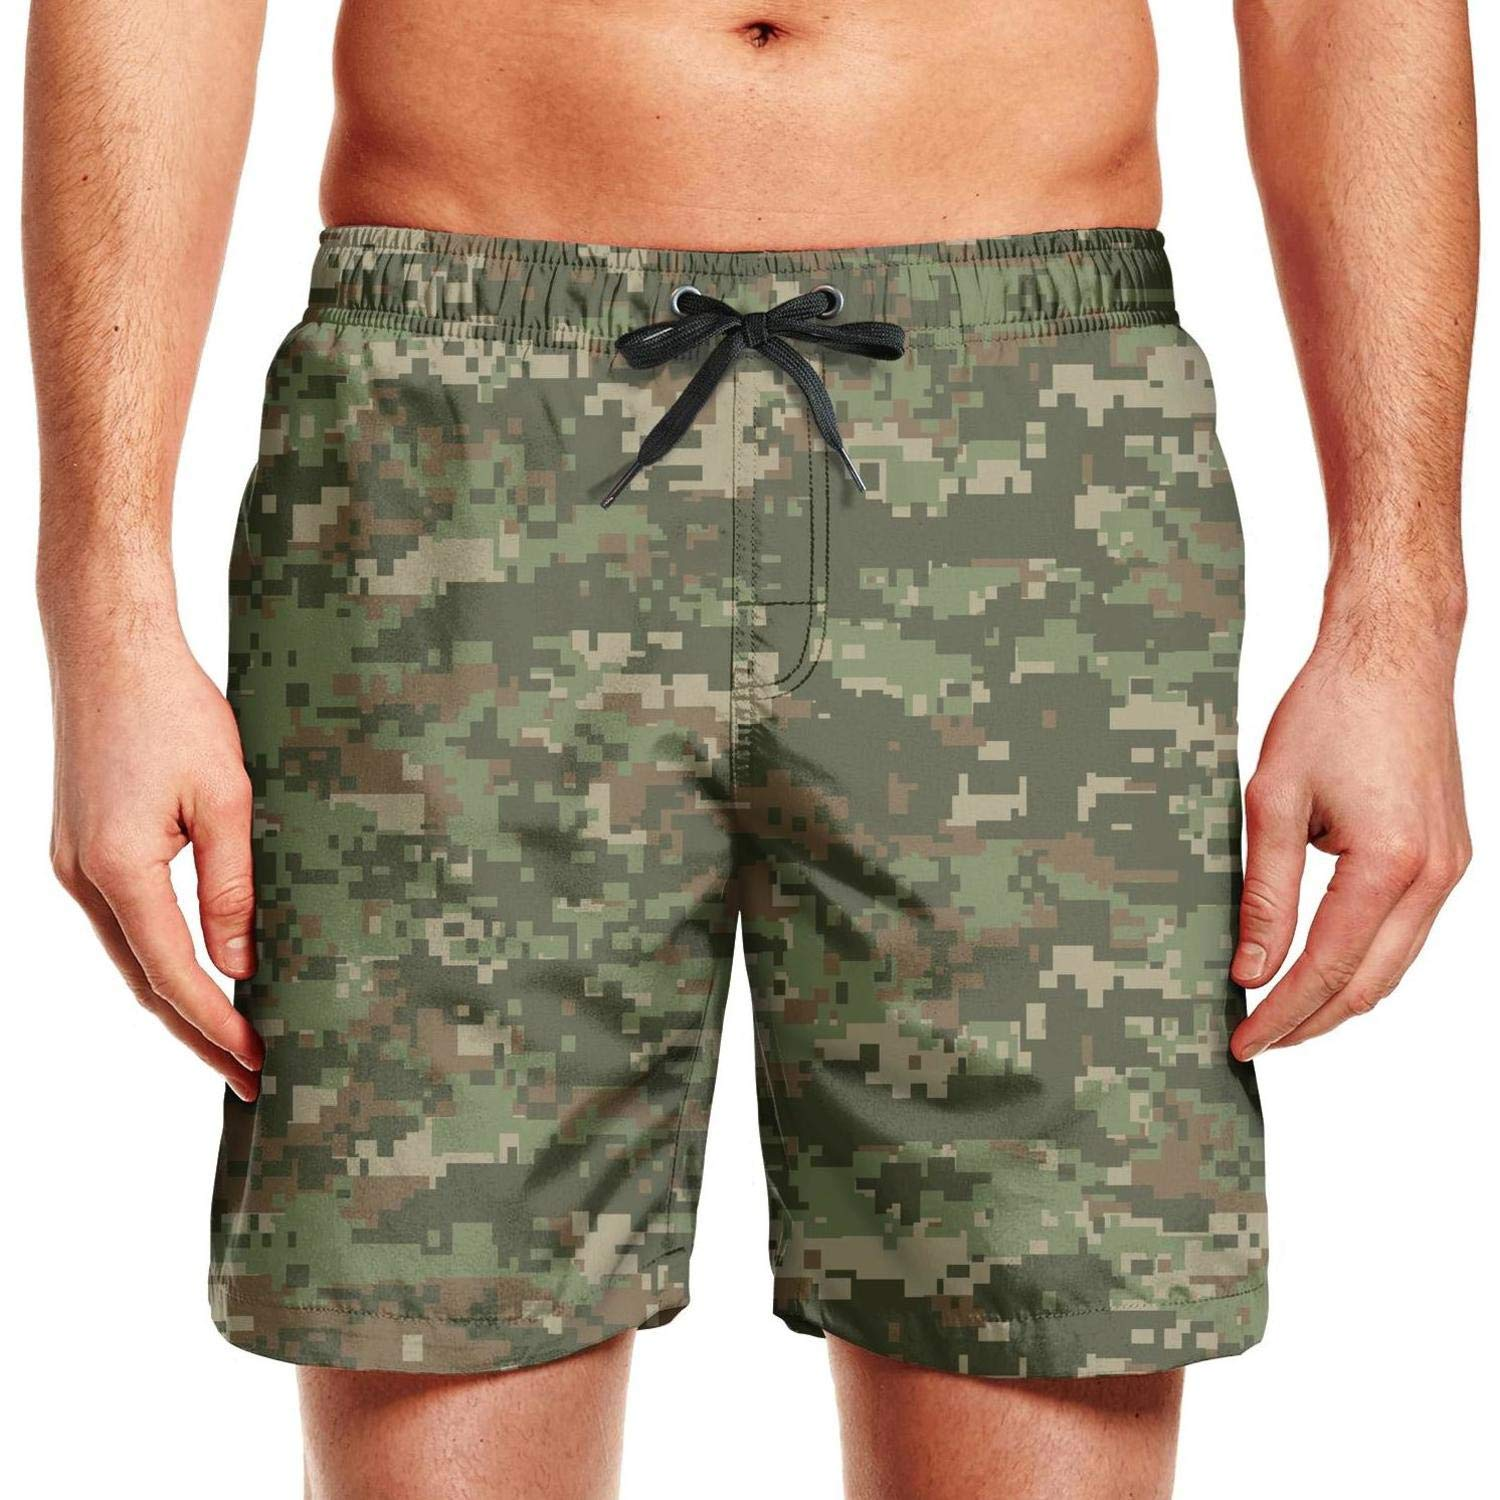 ZYLIN Mens Swim Trunks Printed Classic Woodland Fashion Camouflage Summer Beach Short Cool with Pockets